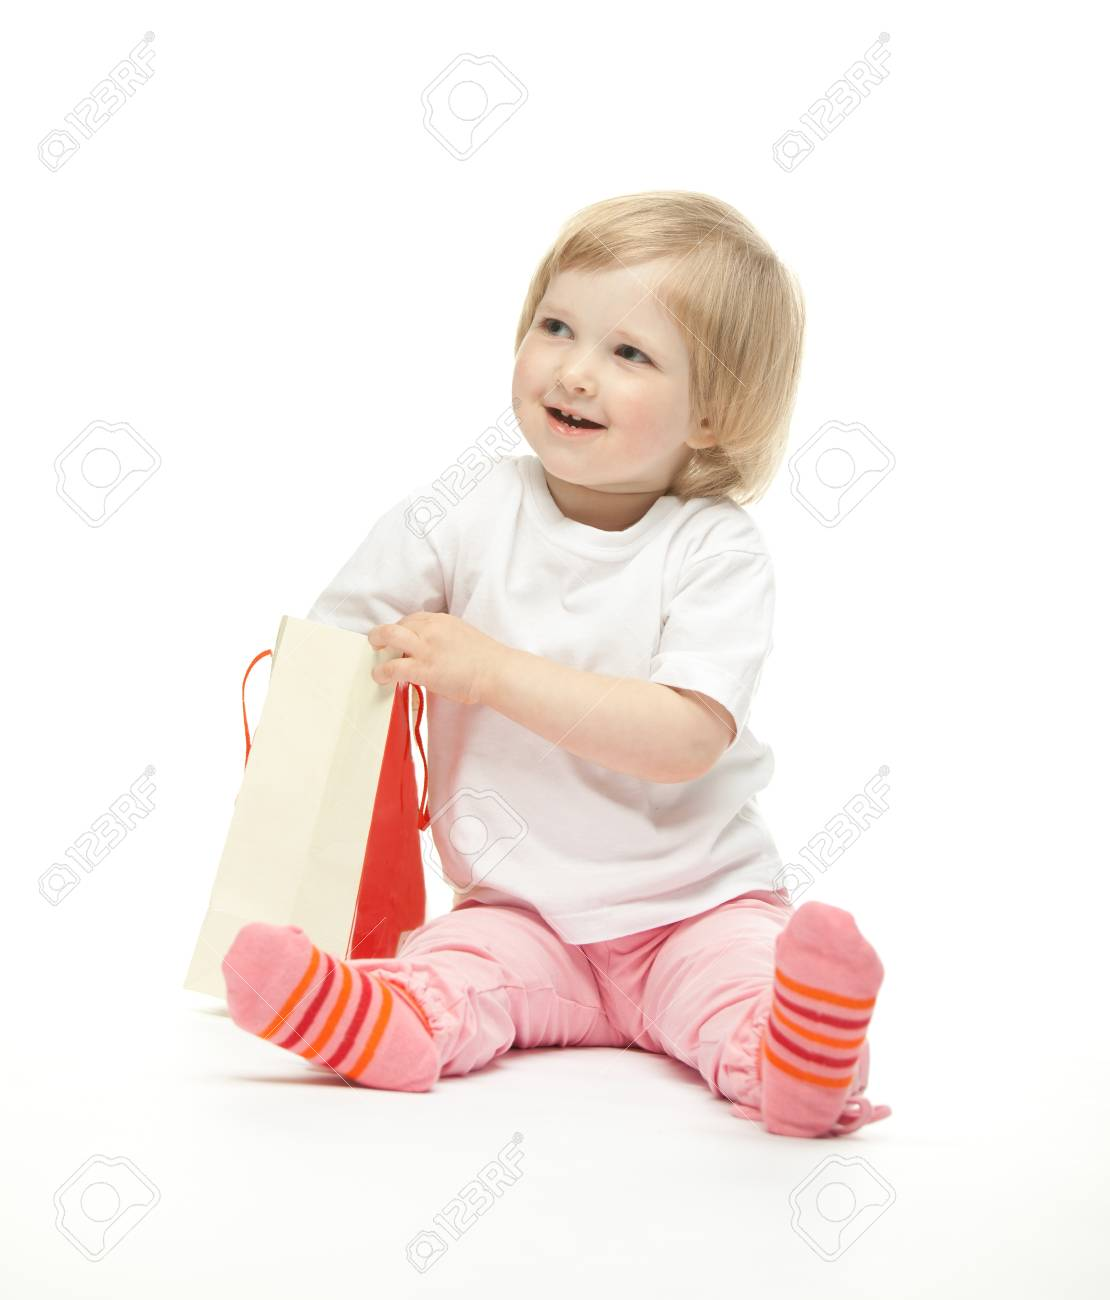 The baby girl finds a present Stock Photo - 11121409